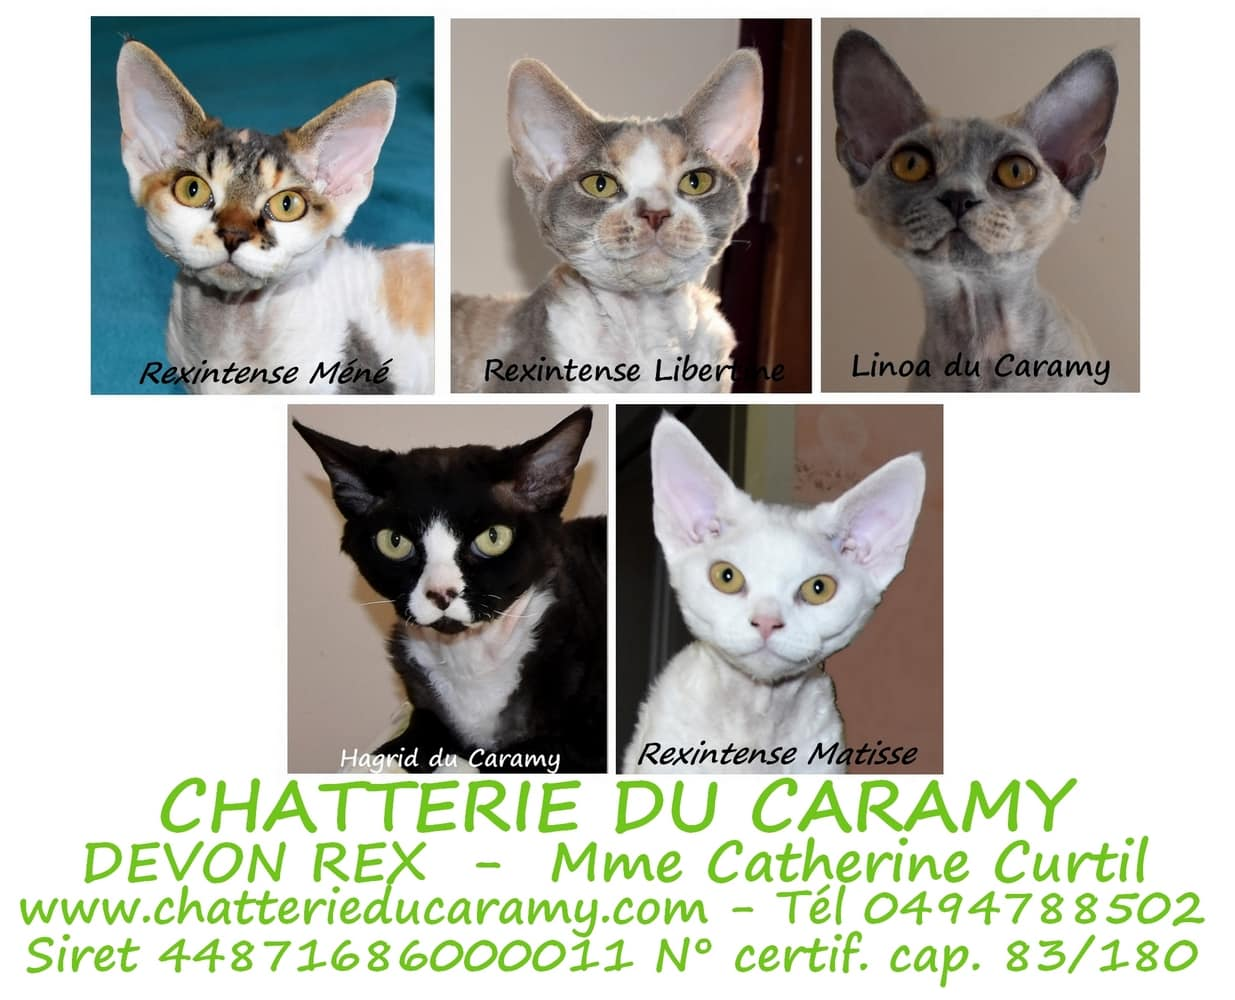 CHATTERIE DU CARAMY